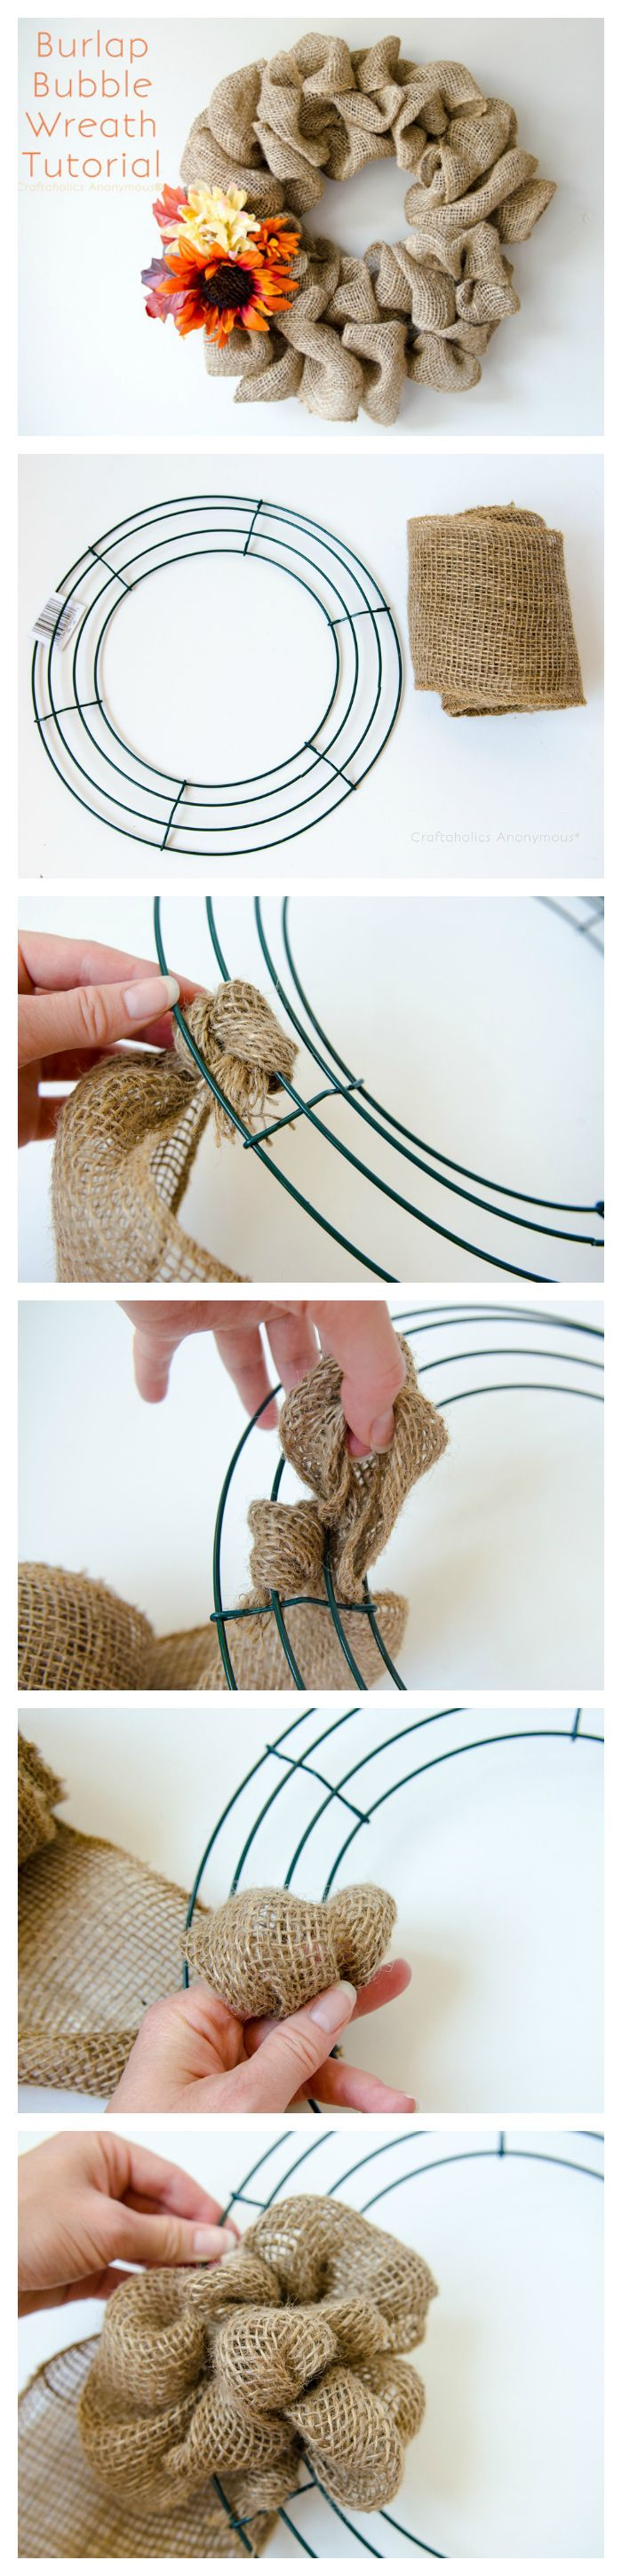 How to make Burlap Wreath for Fall    Super easy fall wreath idea plus you can change our the flowers for year round use.